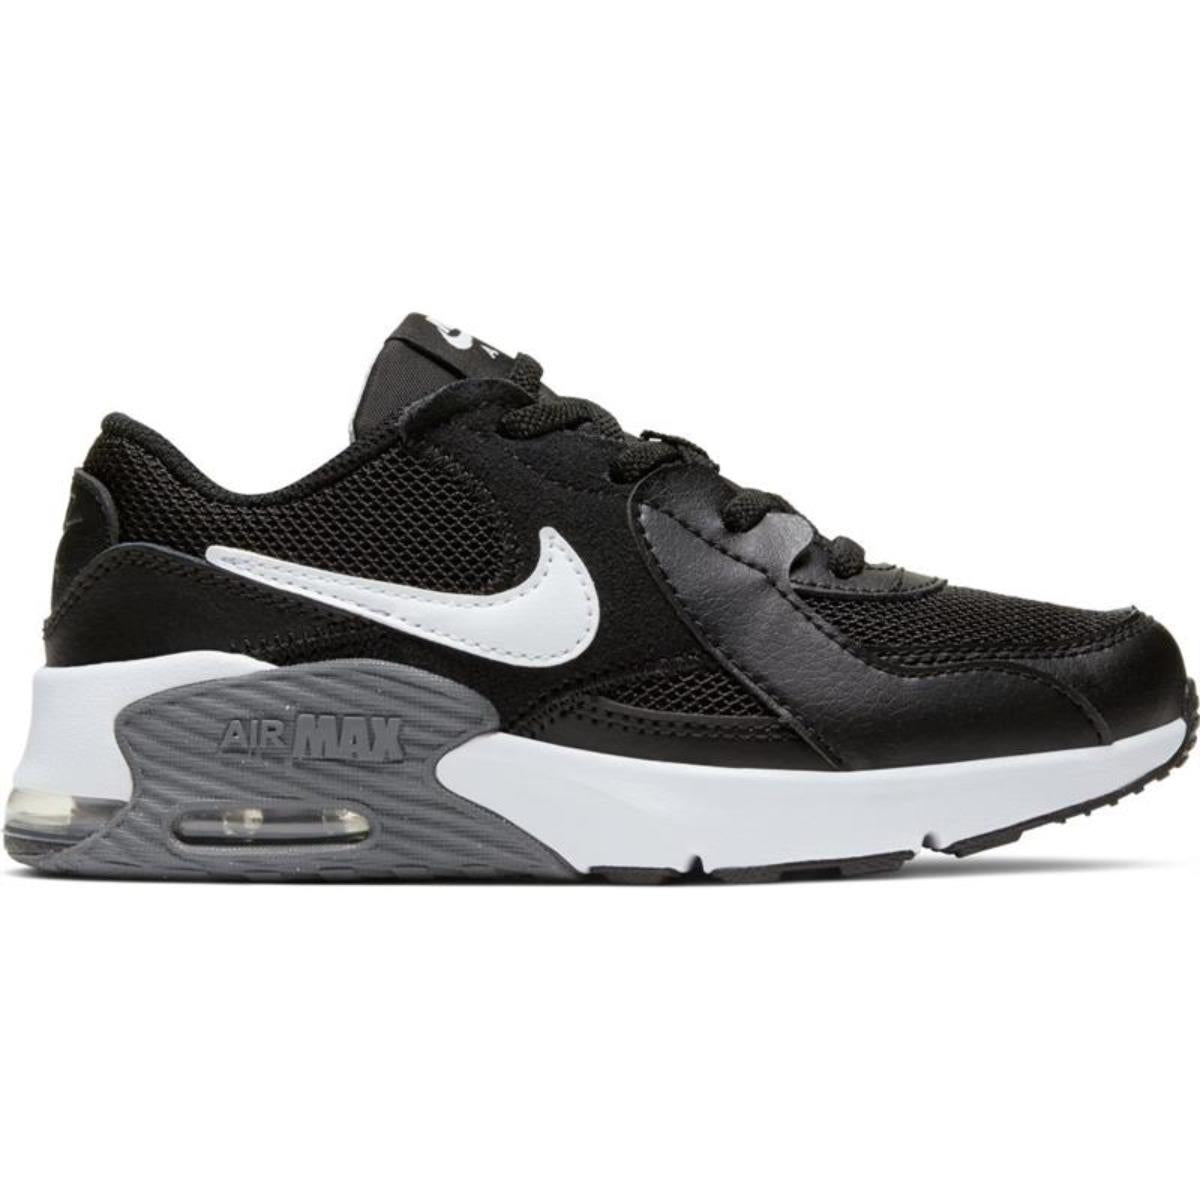 NIKE AIR MAX EXCEE (PS) CD6892 001